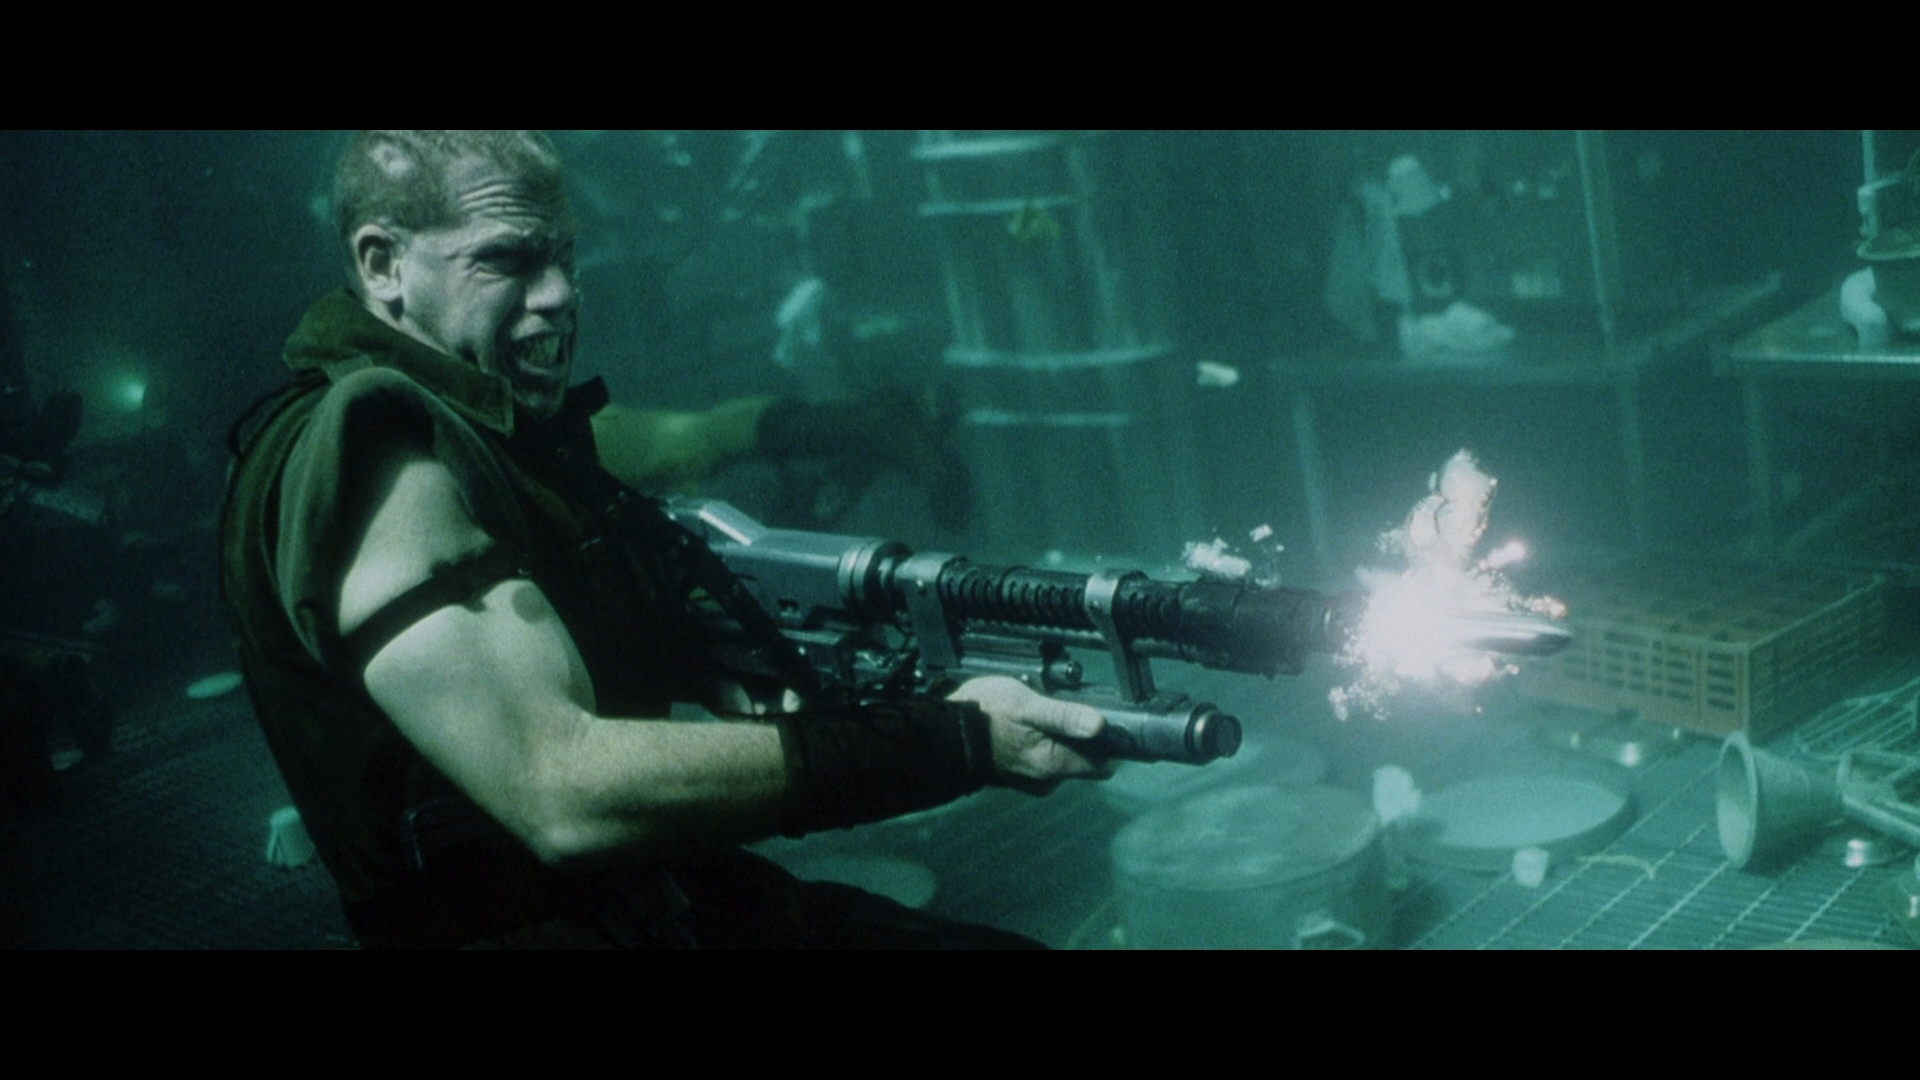 ALIEN RESURRECTION (1997) - Light-Up AR-2 Rifle - Image 18 of 19